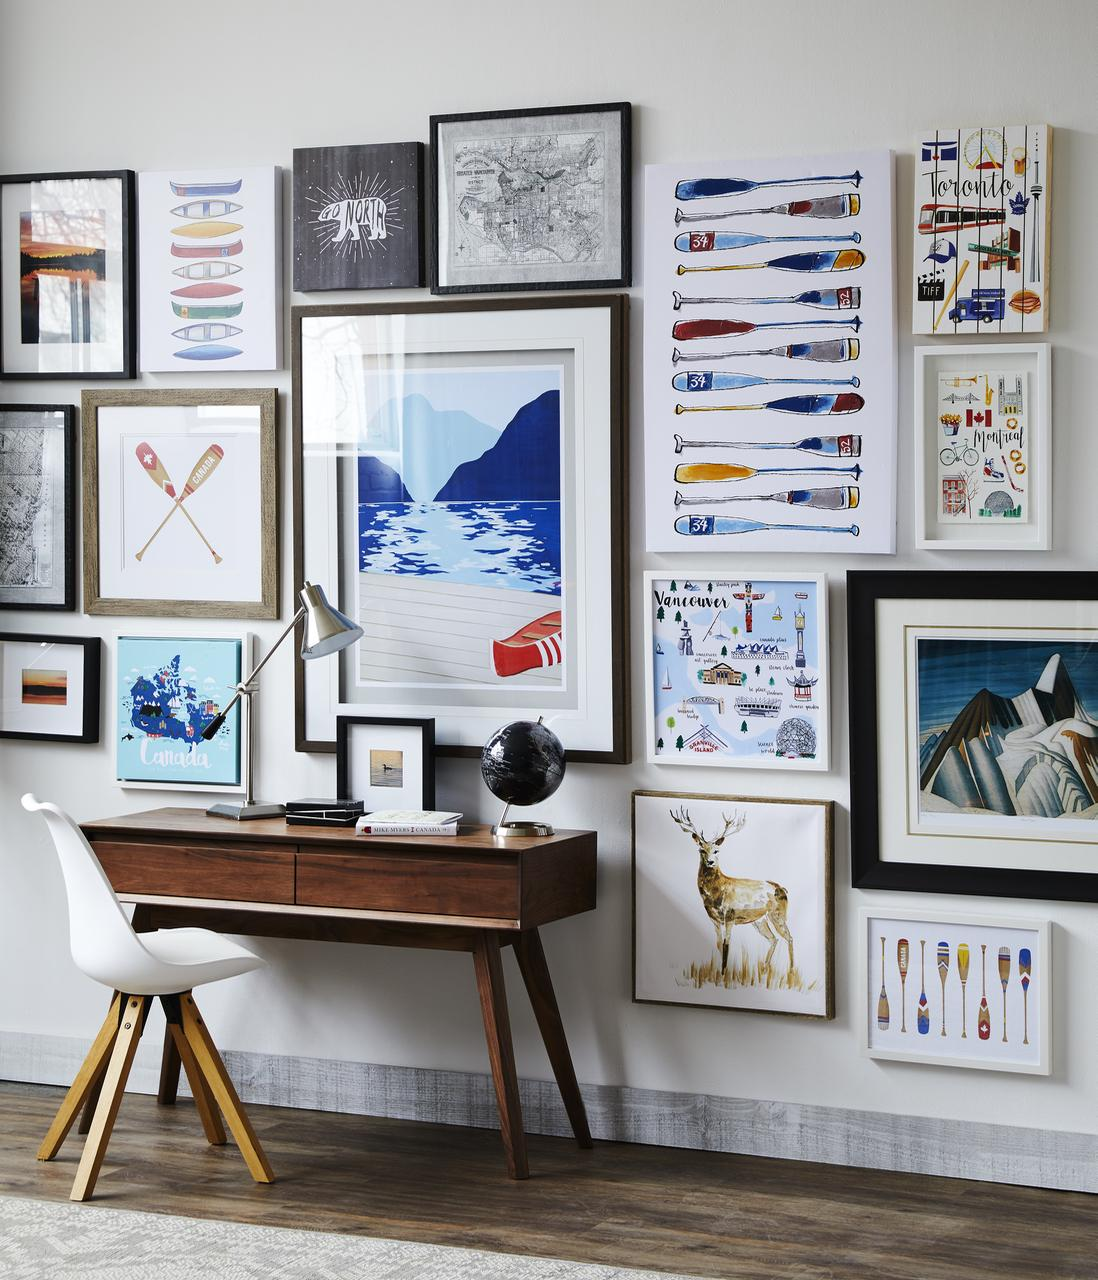 Et voila the salon wall of Canadiana! Actually, I think this is my fave. I have a salon wall addiction.